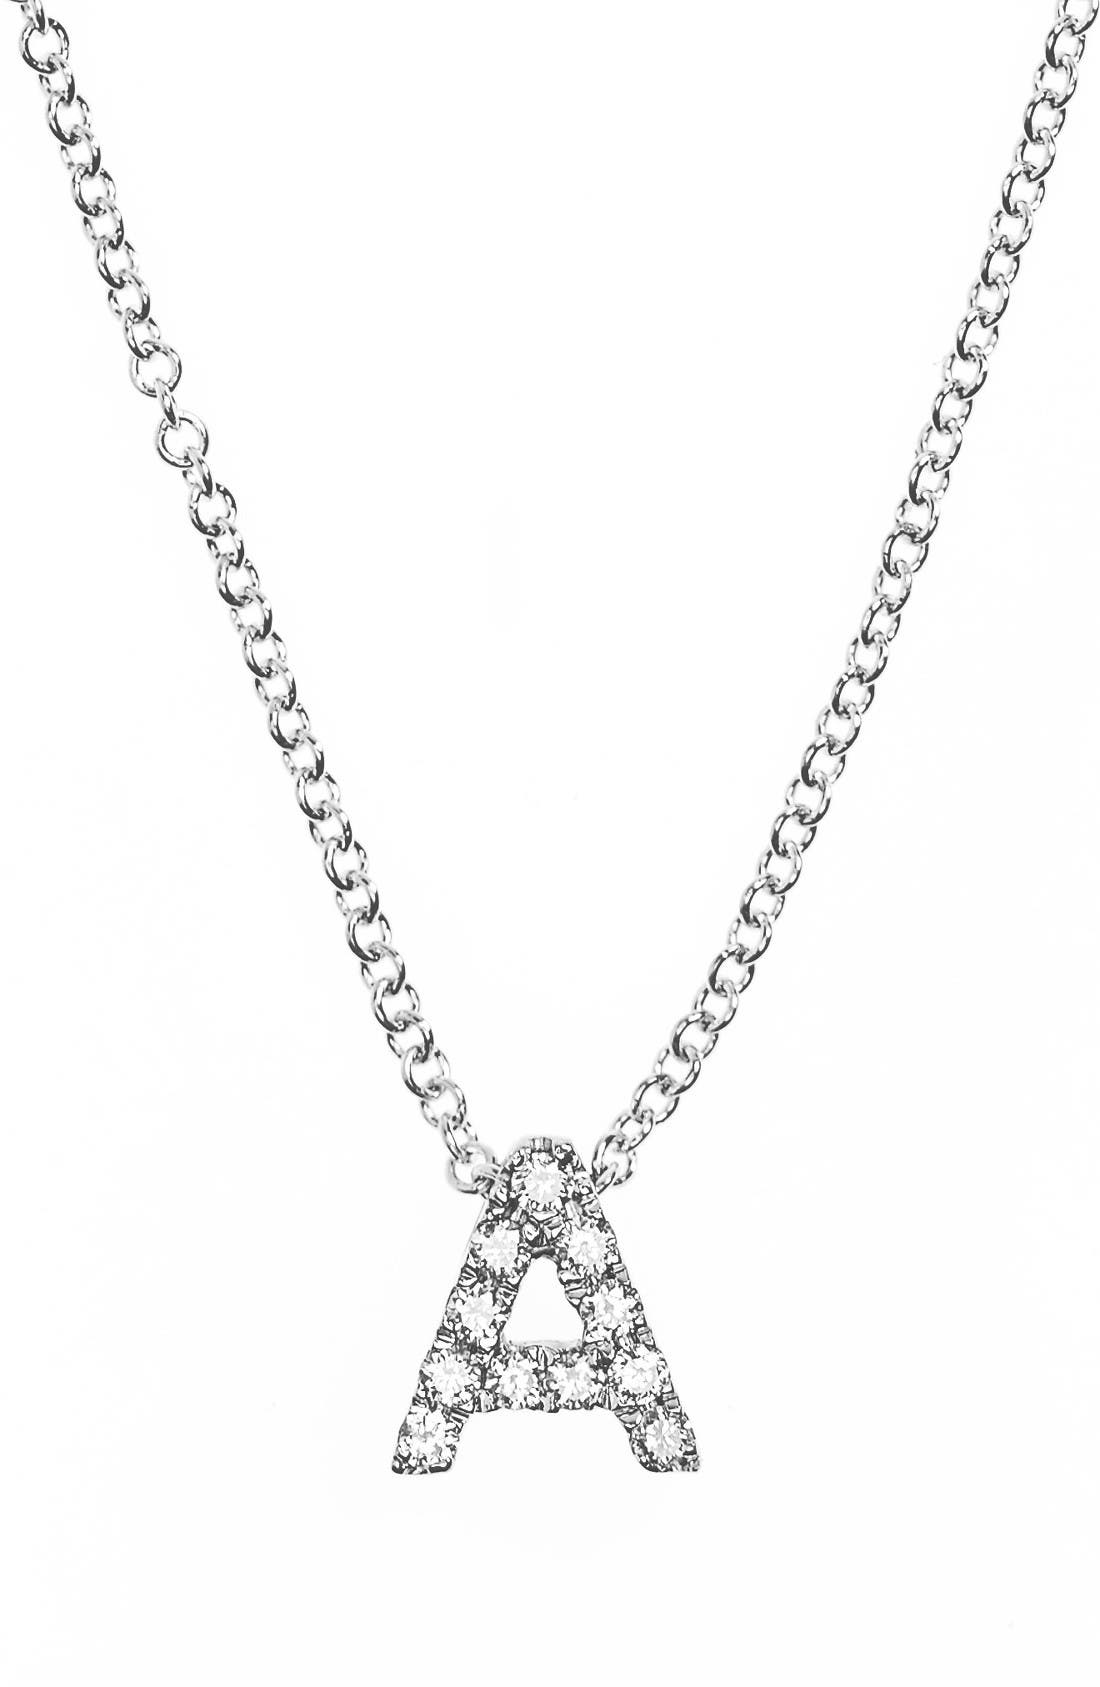 18k Gold Pavé Diamond Initial Pendant Necklace,                         Main,                         color, WHITE GOLD - A